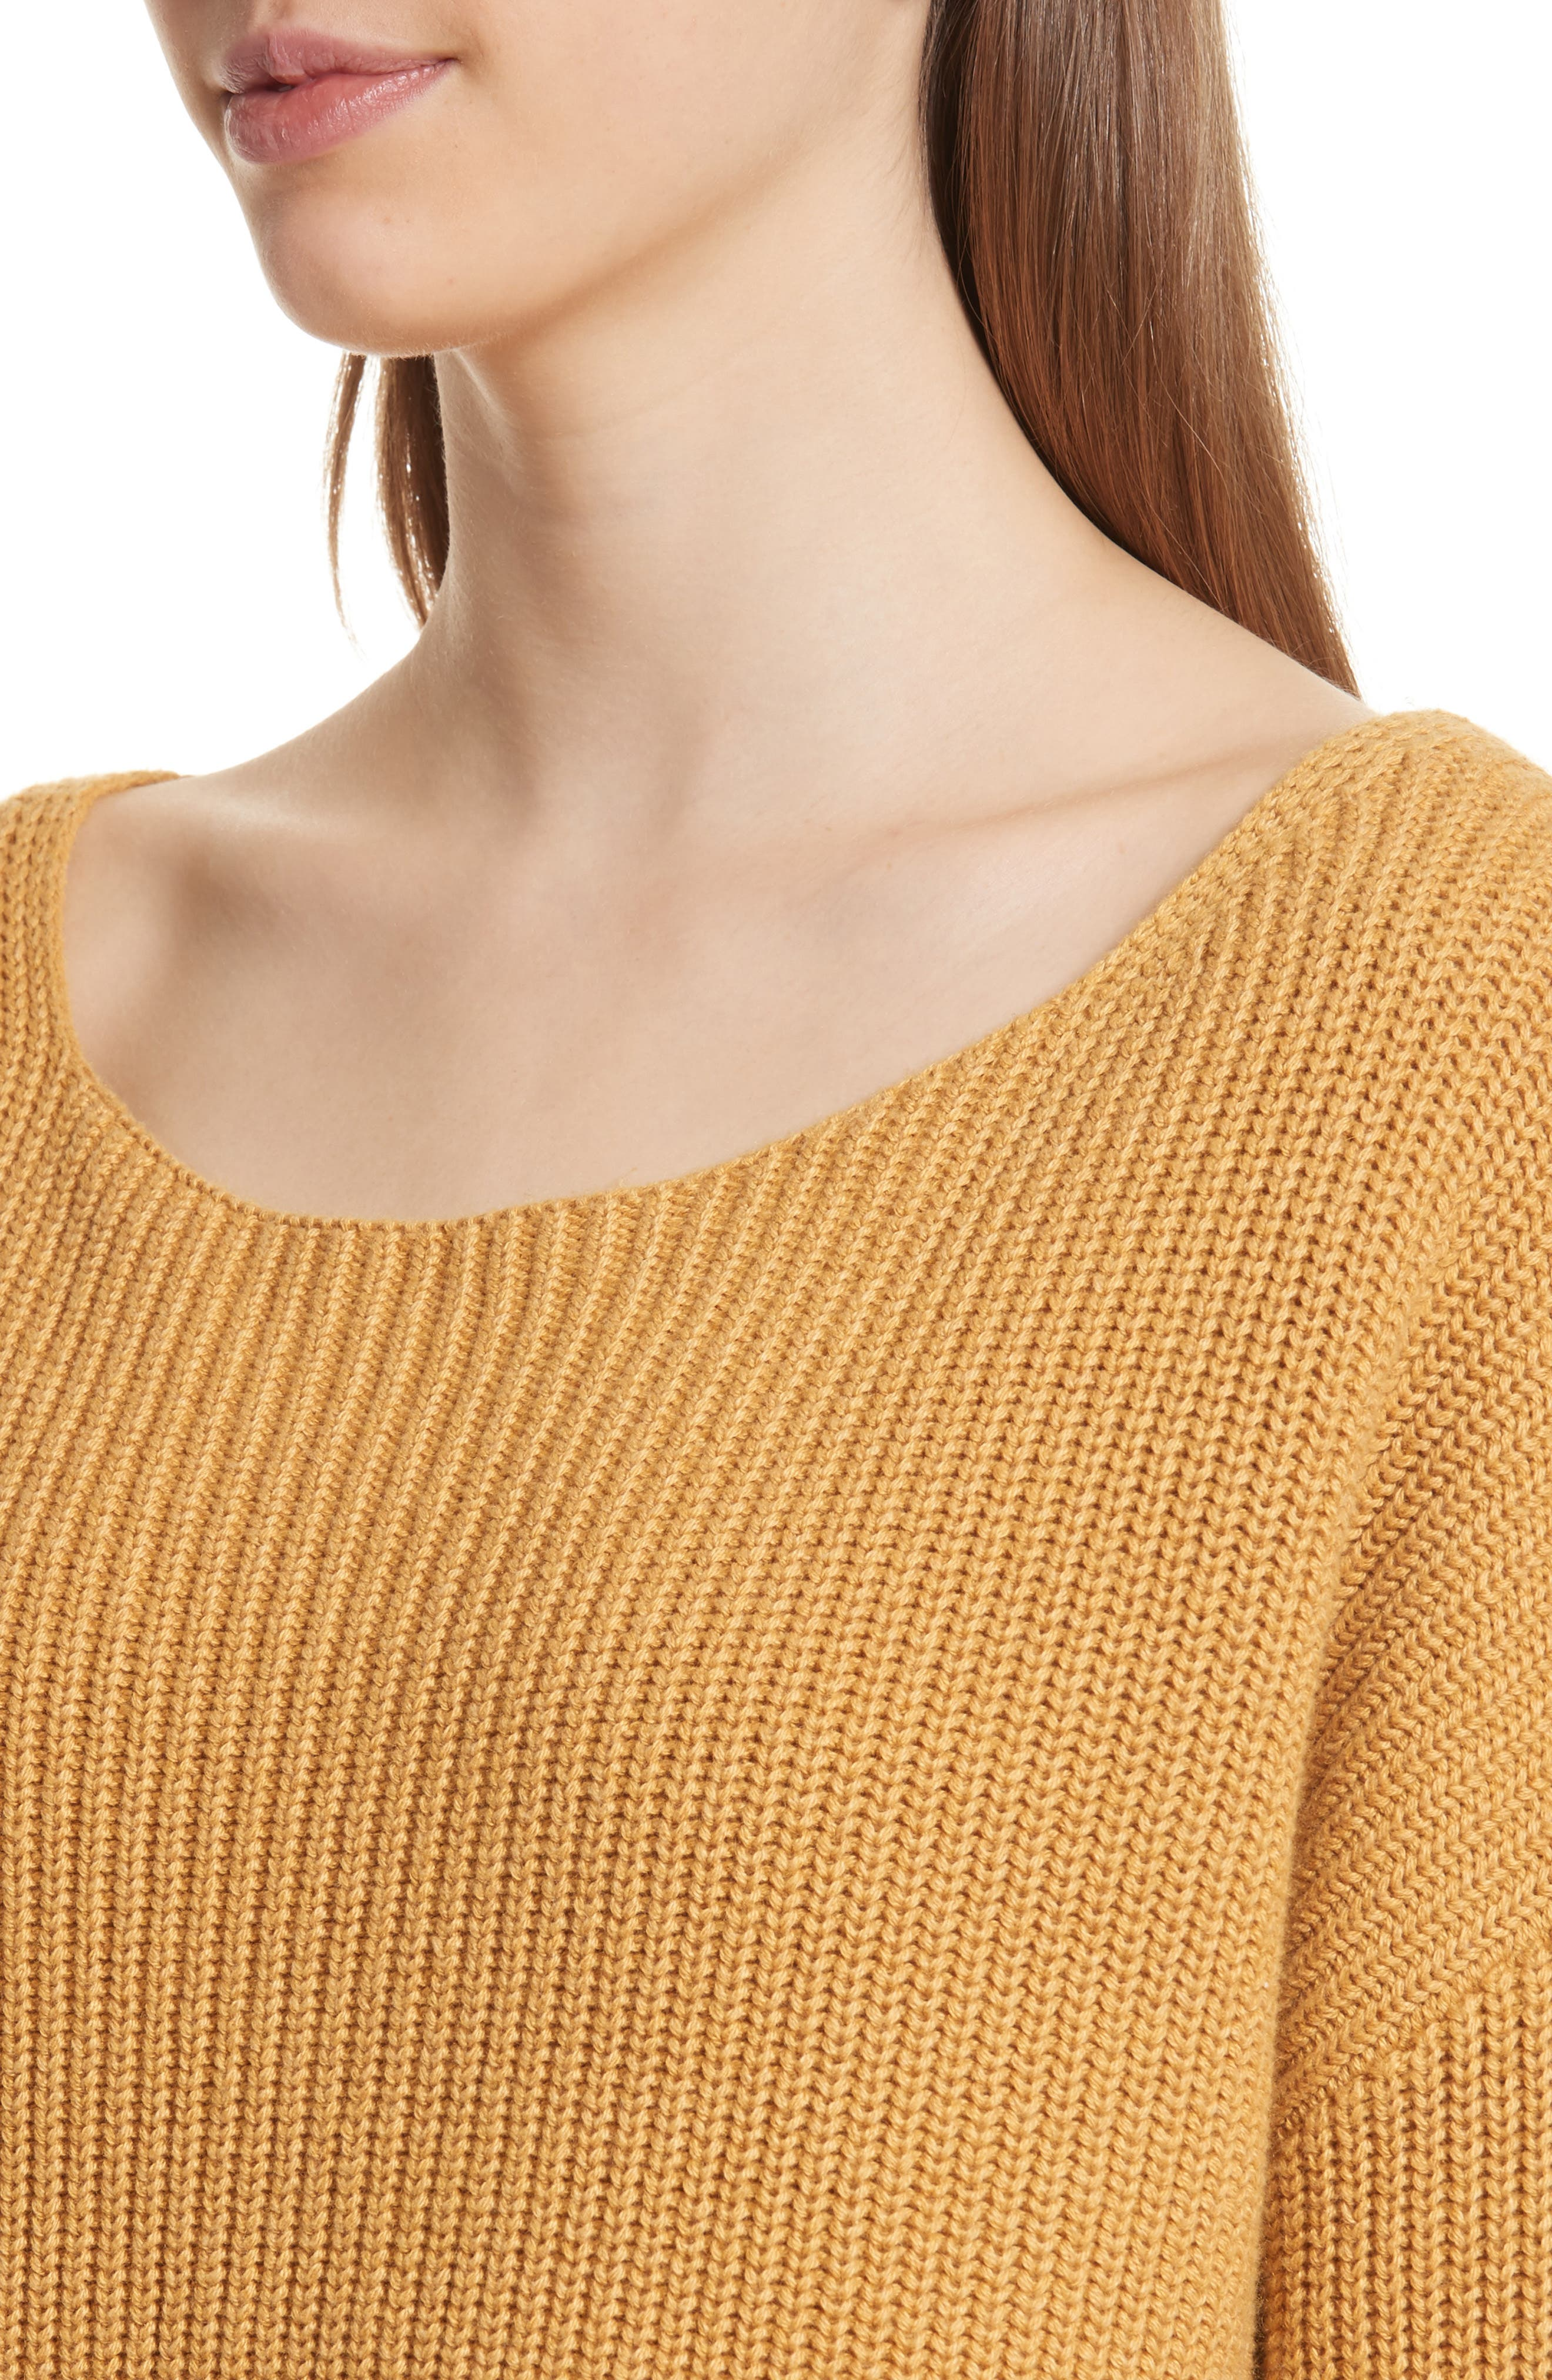 Martindale Ribbed Cotton, Cashmere & Silk Sweater,                             Alternate thumbnail 4, color,                             Mustard